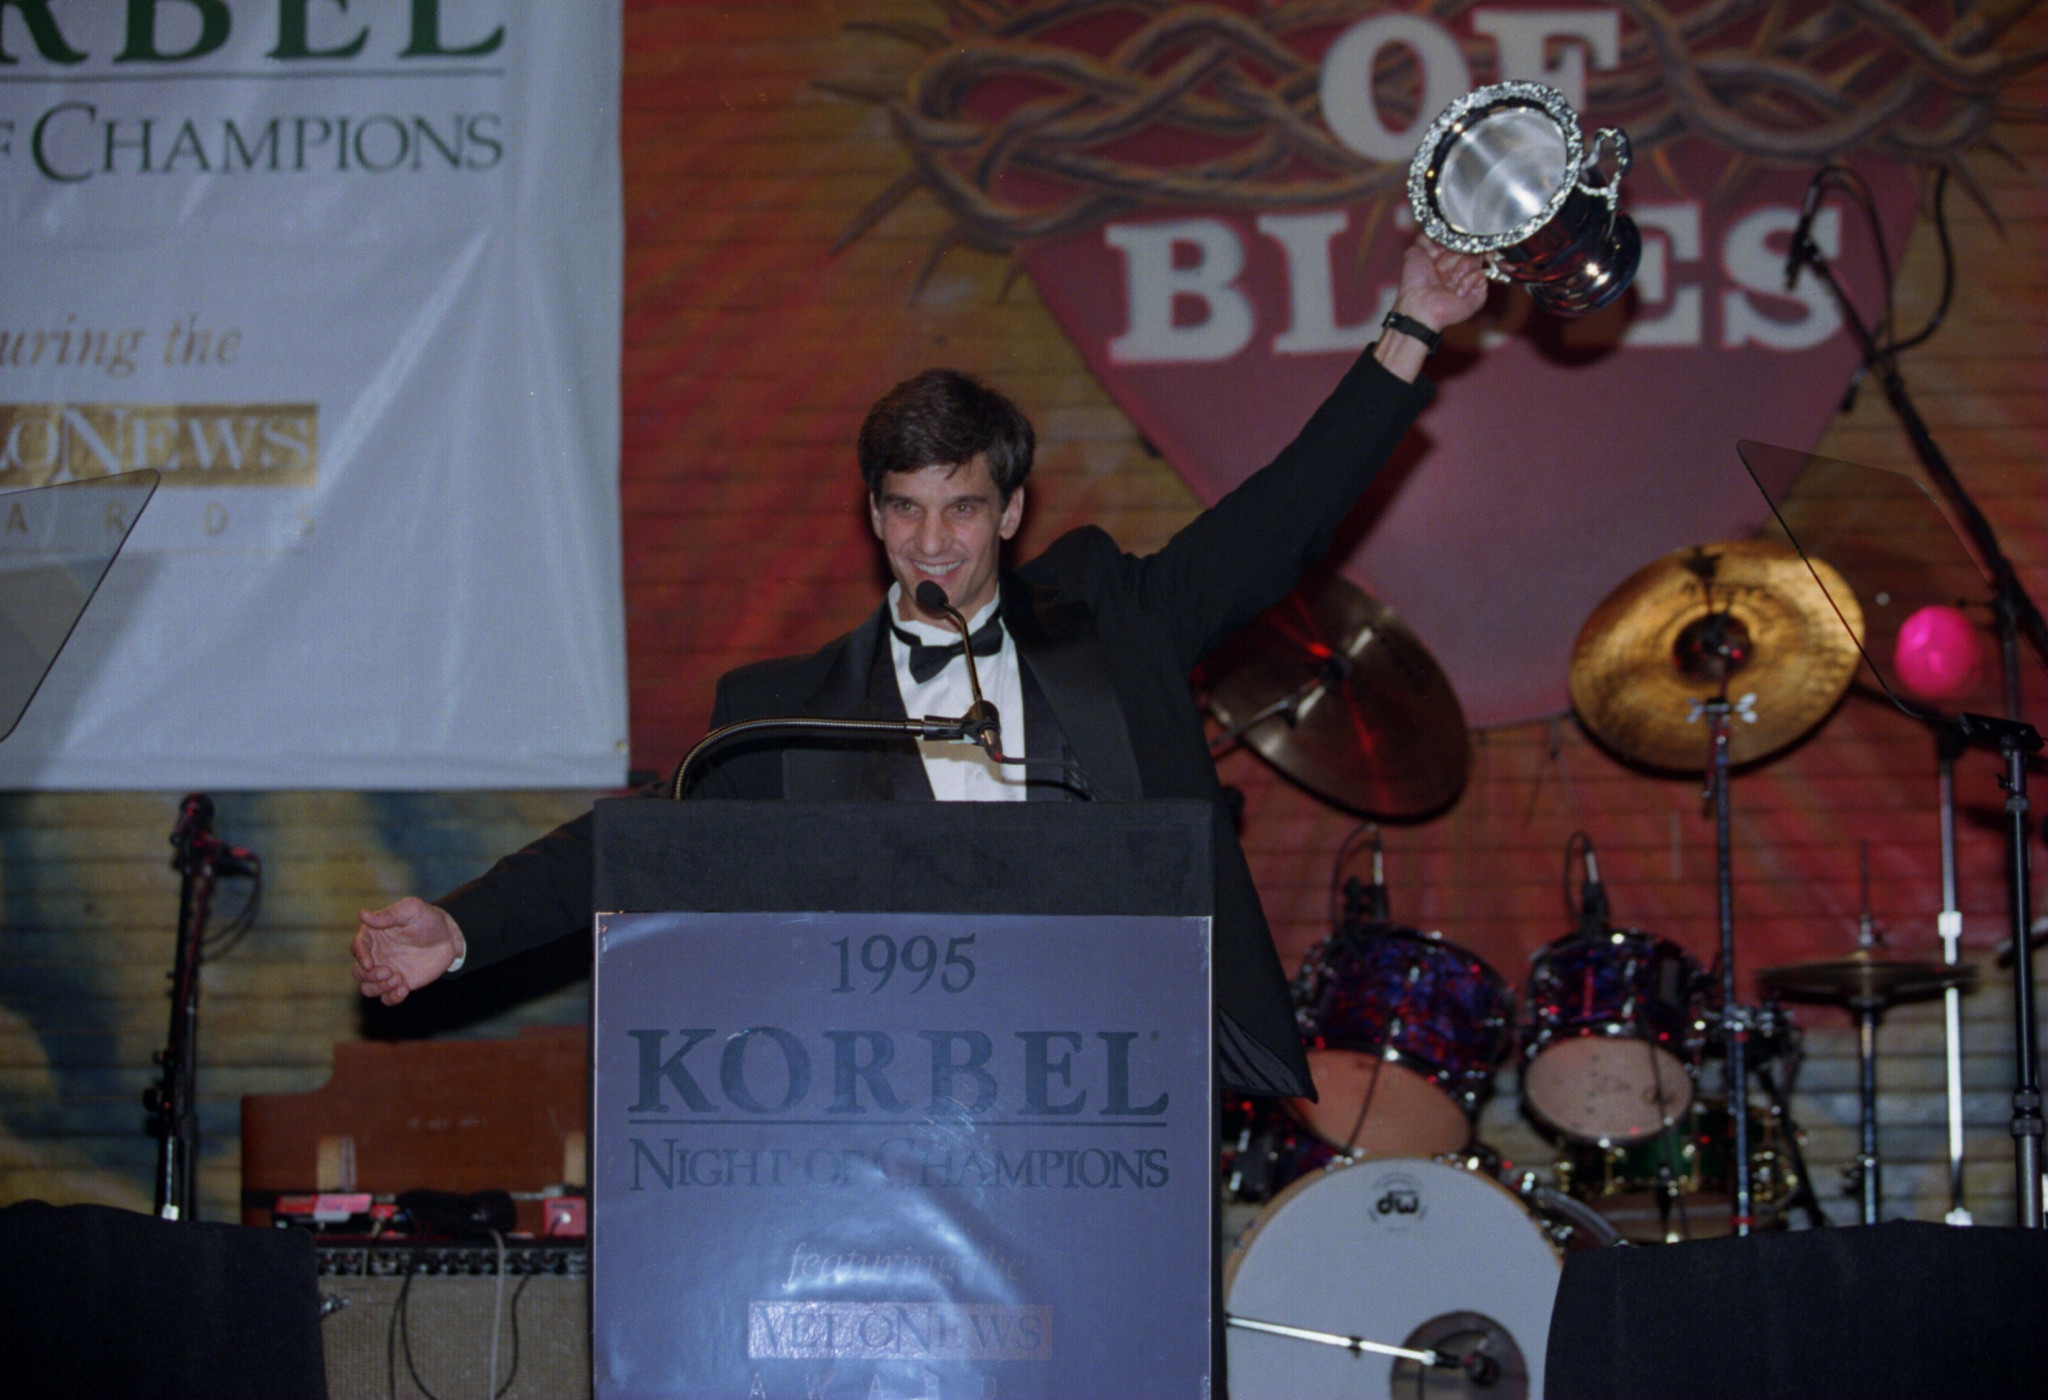 Heiden received the Korbel Lifetime Achievement Award at the House of Blues in Hollywood for his contributions to cycling in the US ©Getty Images